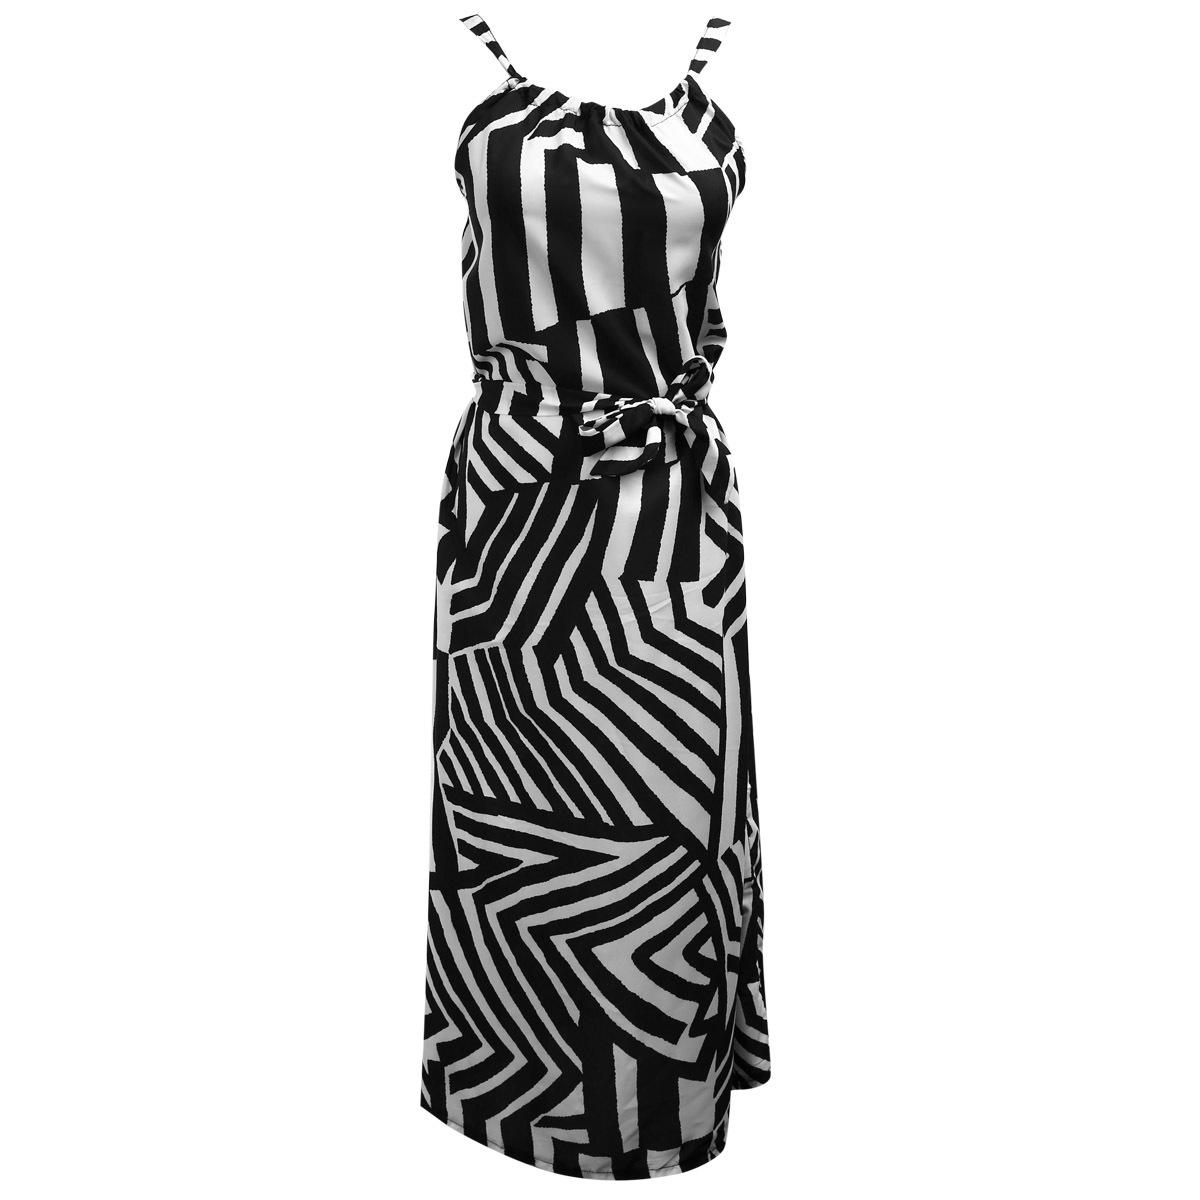 464f2f93ae2 Women Sexy Summer Dress Sleeveless Maxi Long Evening Party Beach Dress  Sundress Size S XL Party Dresses Online Day Dresses From Mobile03